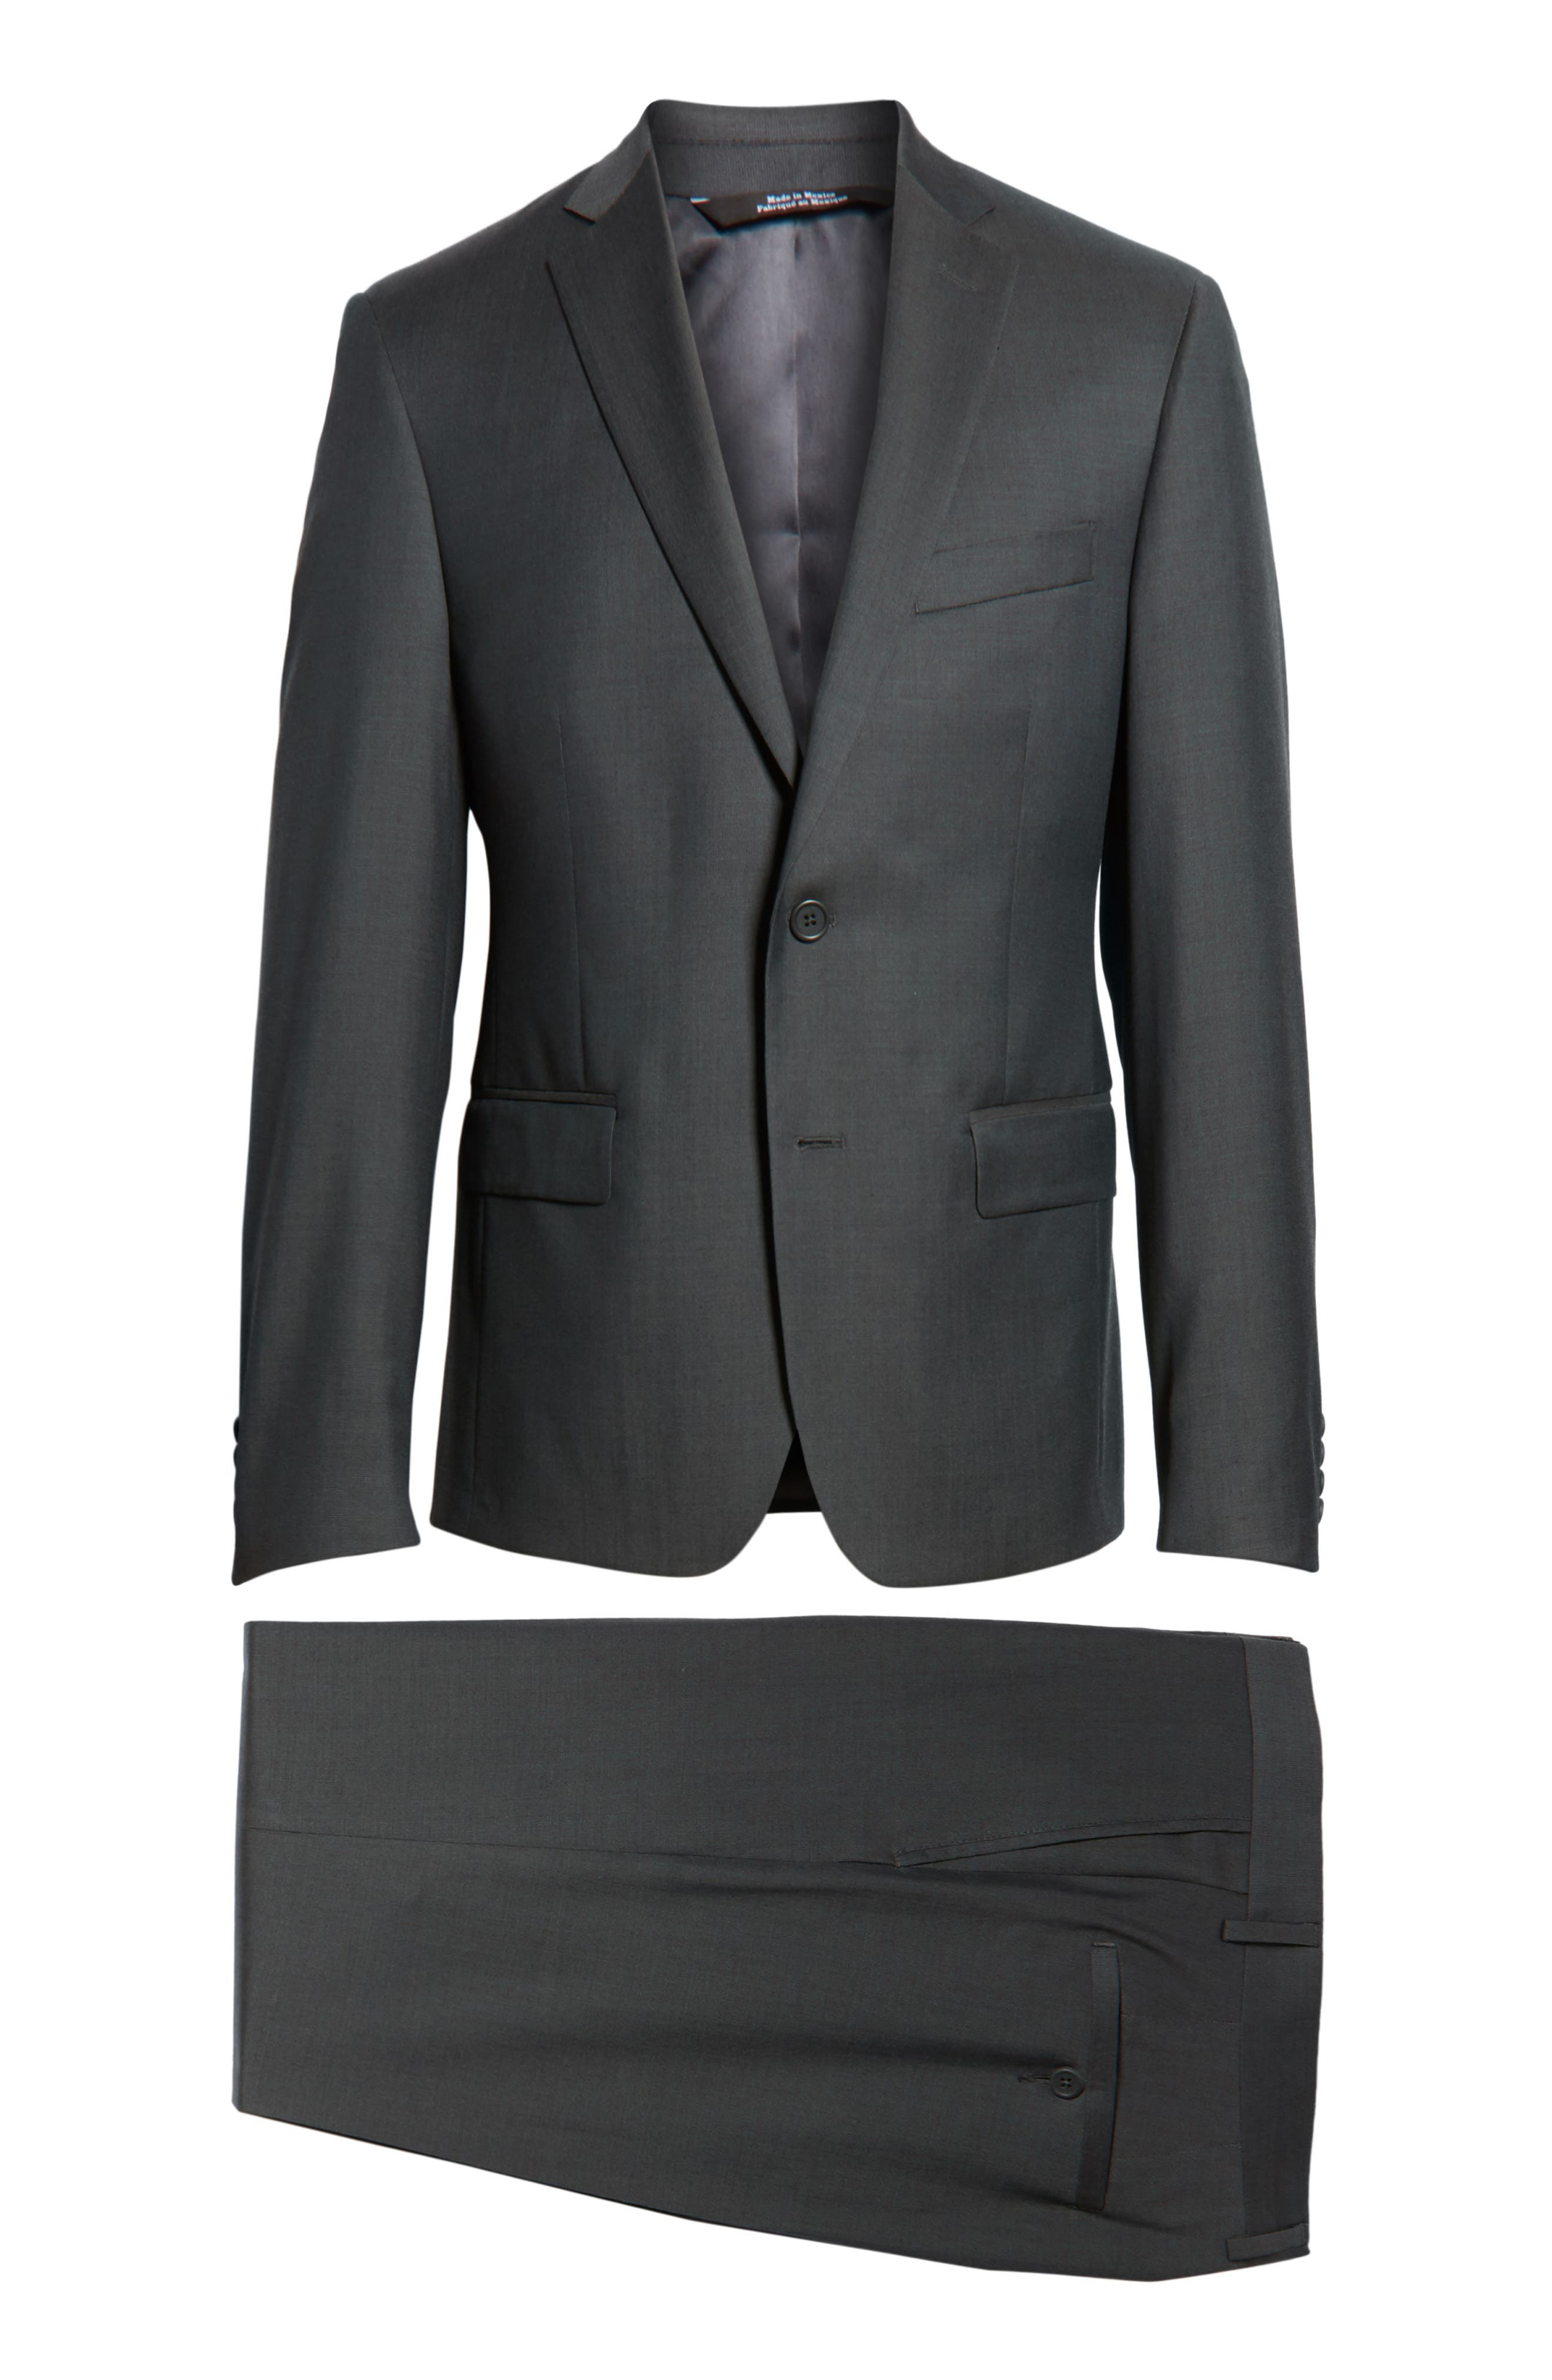 Extra Trim Fit Solid Wool Suit,                             Alternate thumbnail 8, color,                             021